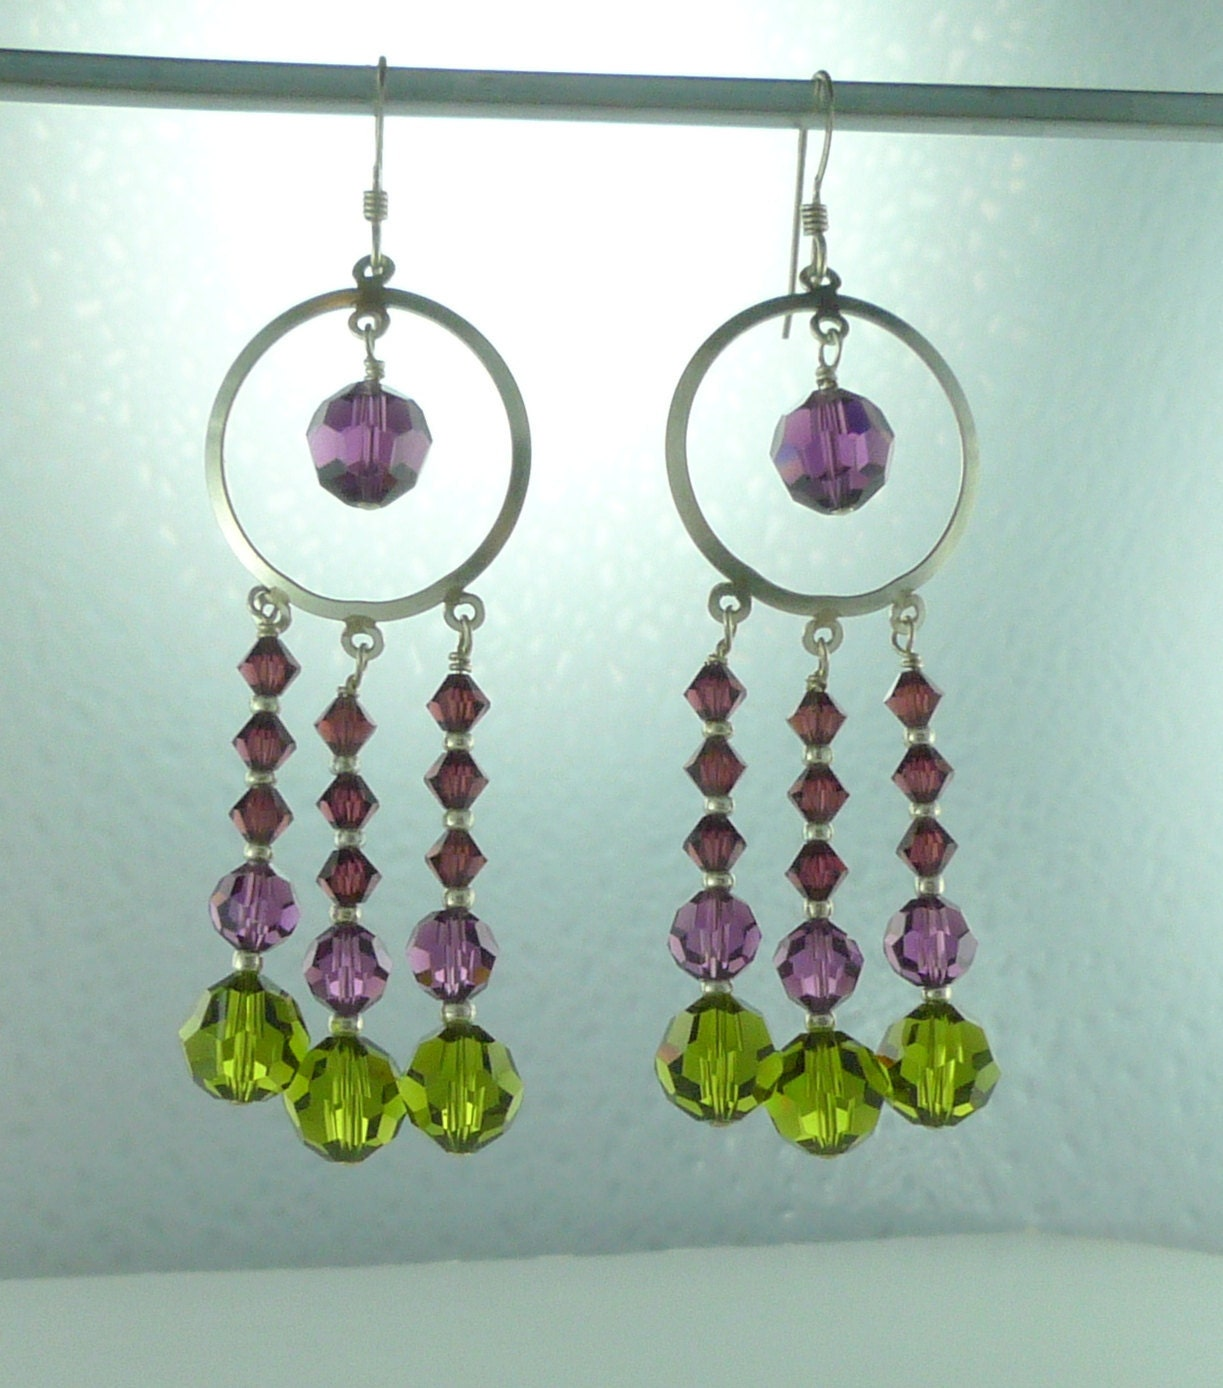 Chandelier earrings olivine amethyst burgundy swarovski crystal chandelier earrings olivine amethyst burgundy swarovski crystal colorful wedding prom sterling silver arubaitofo Choice Image